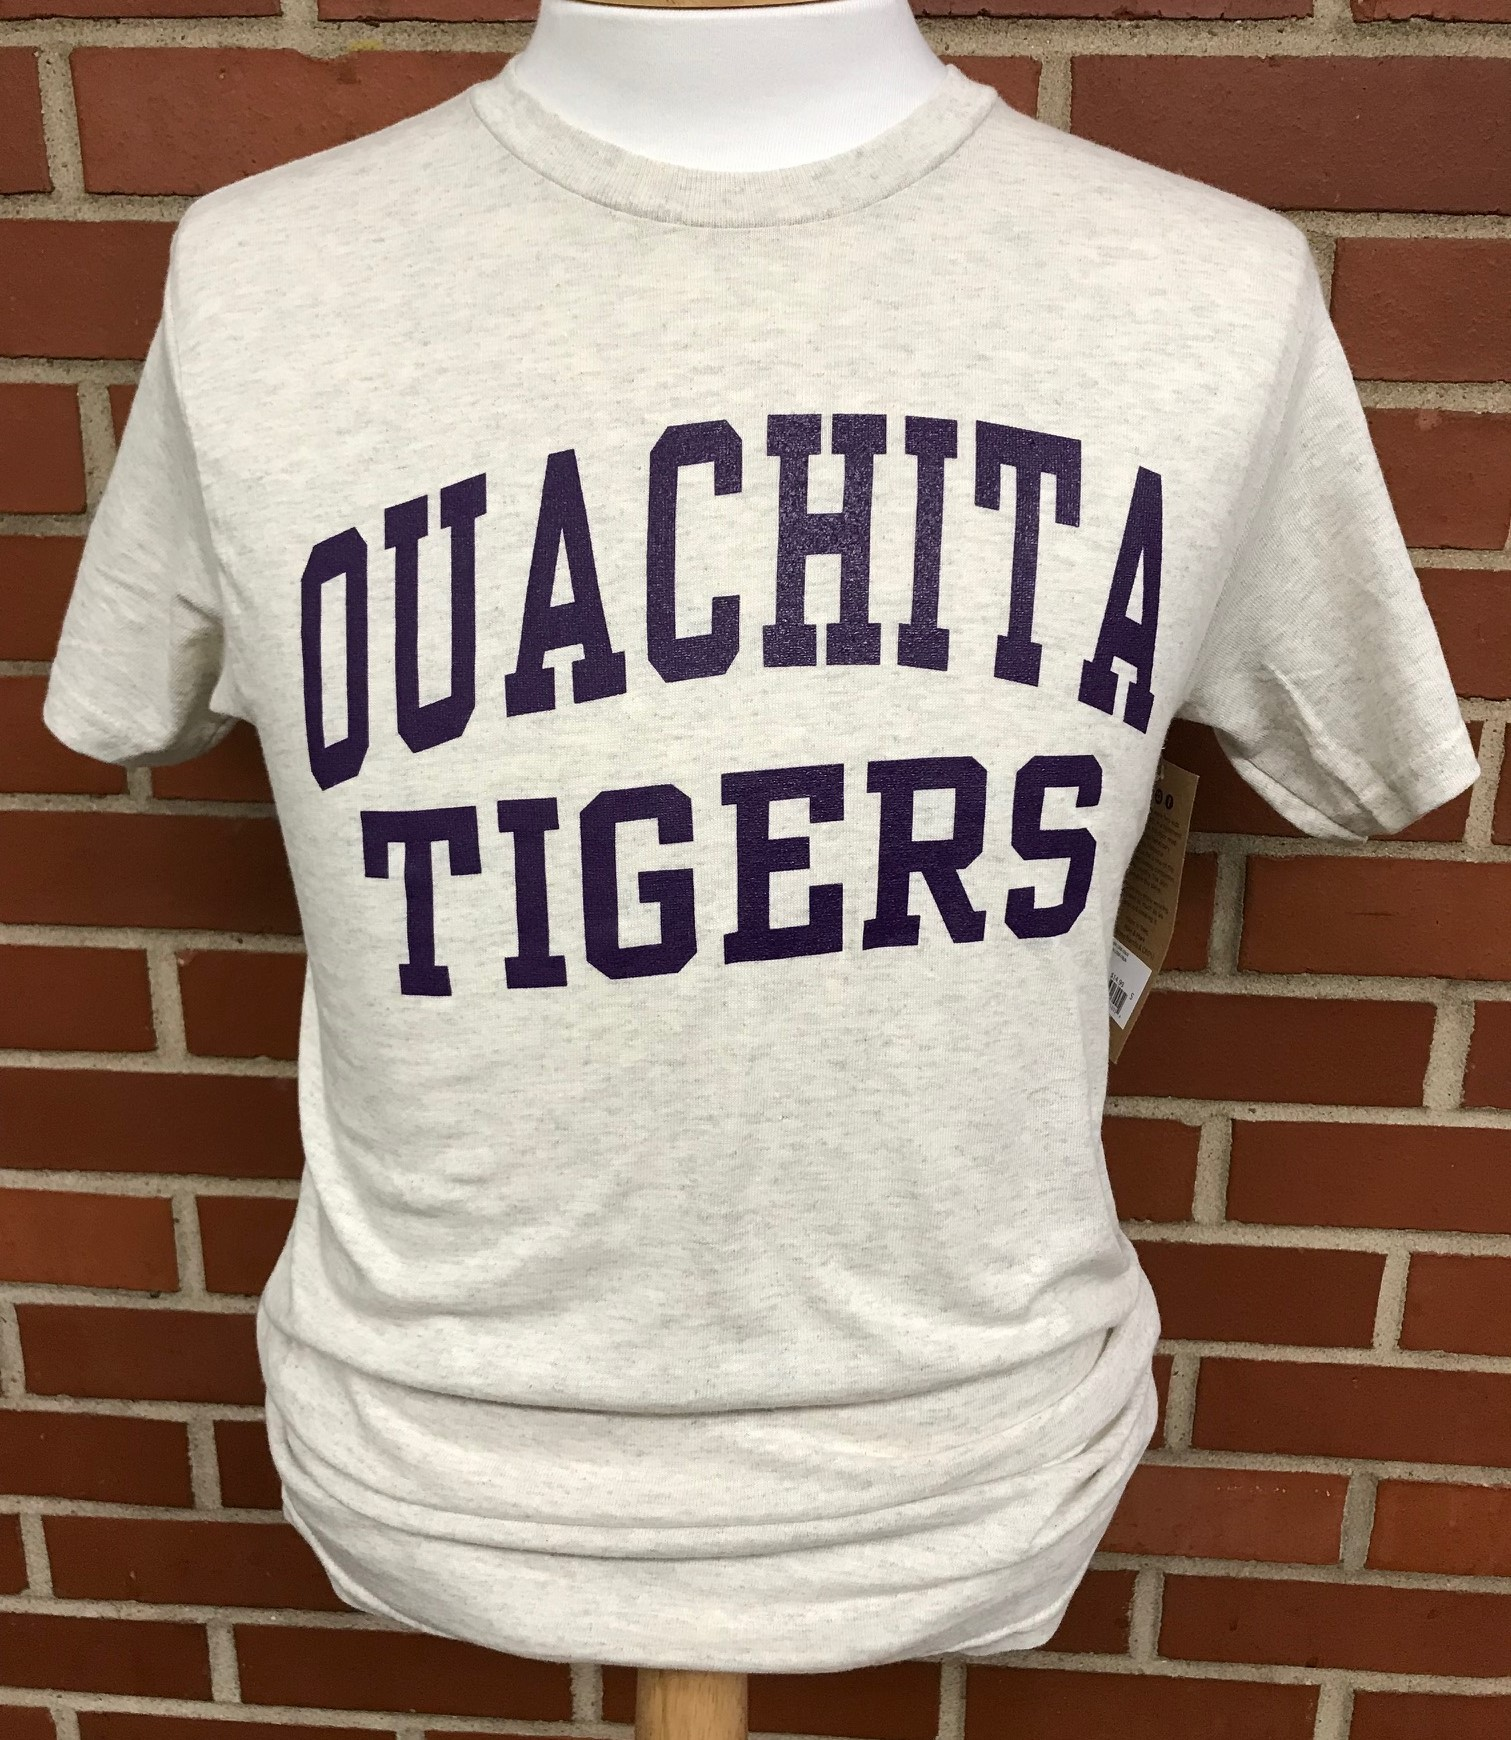 OUACHITA TIGER HEATHERED SS TEE